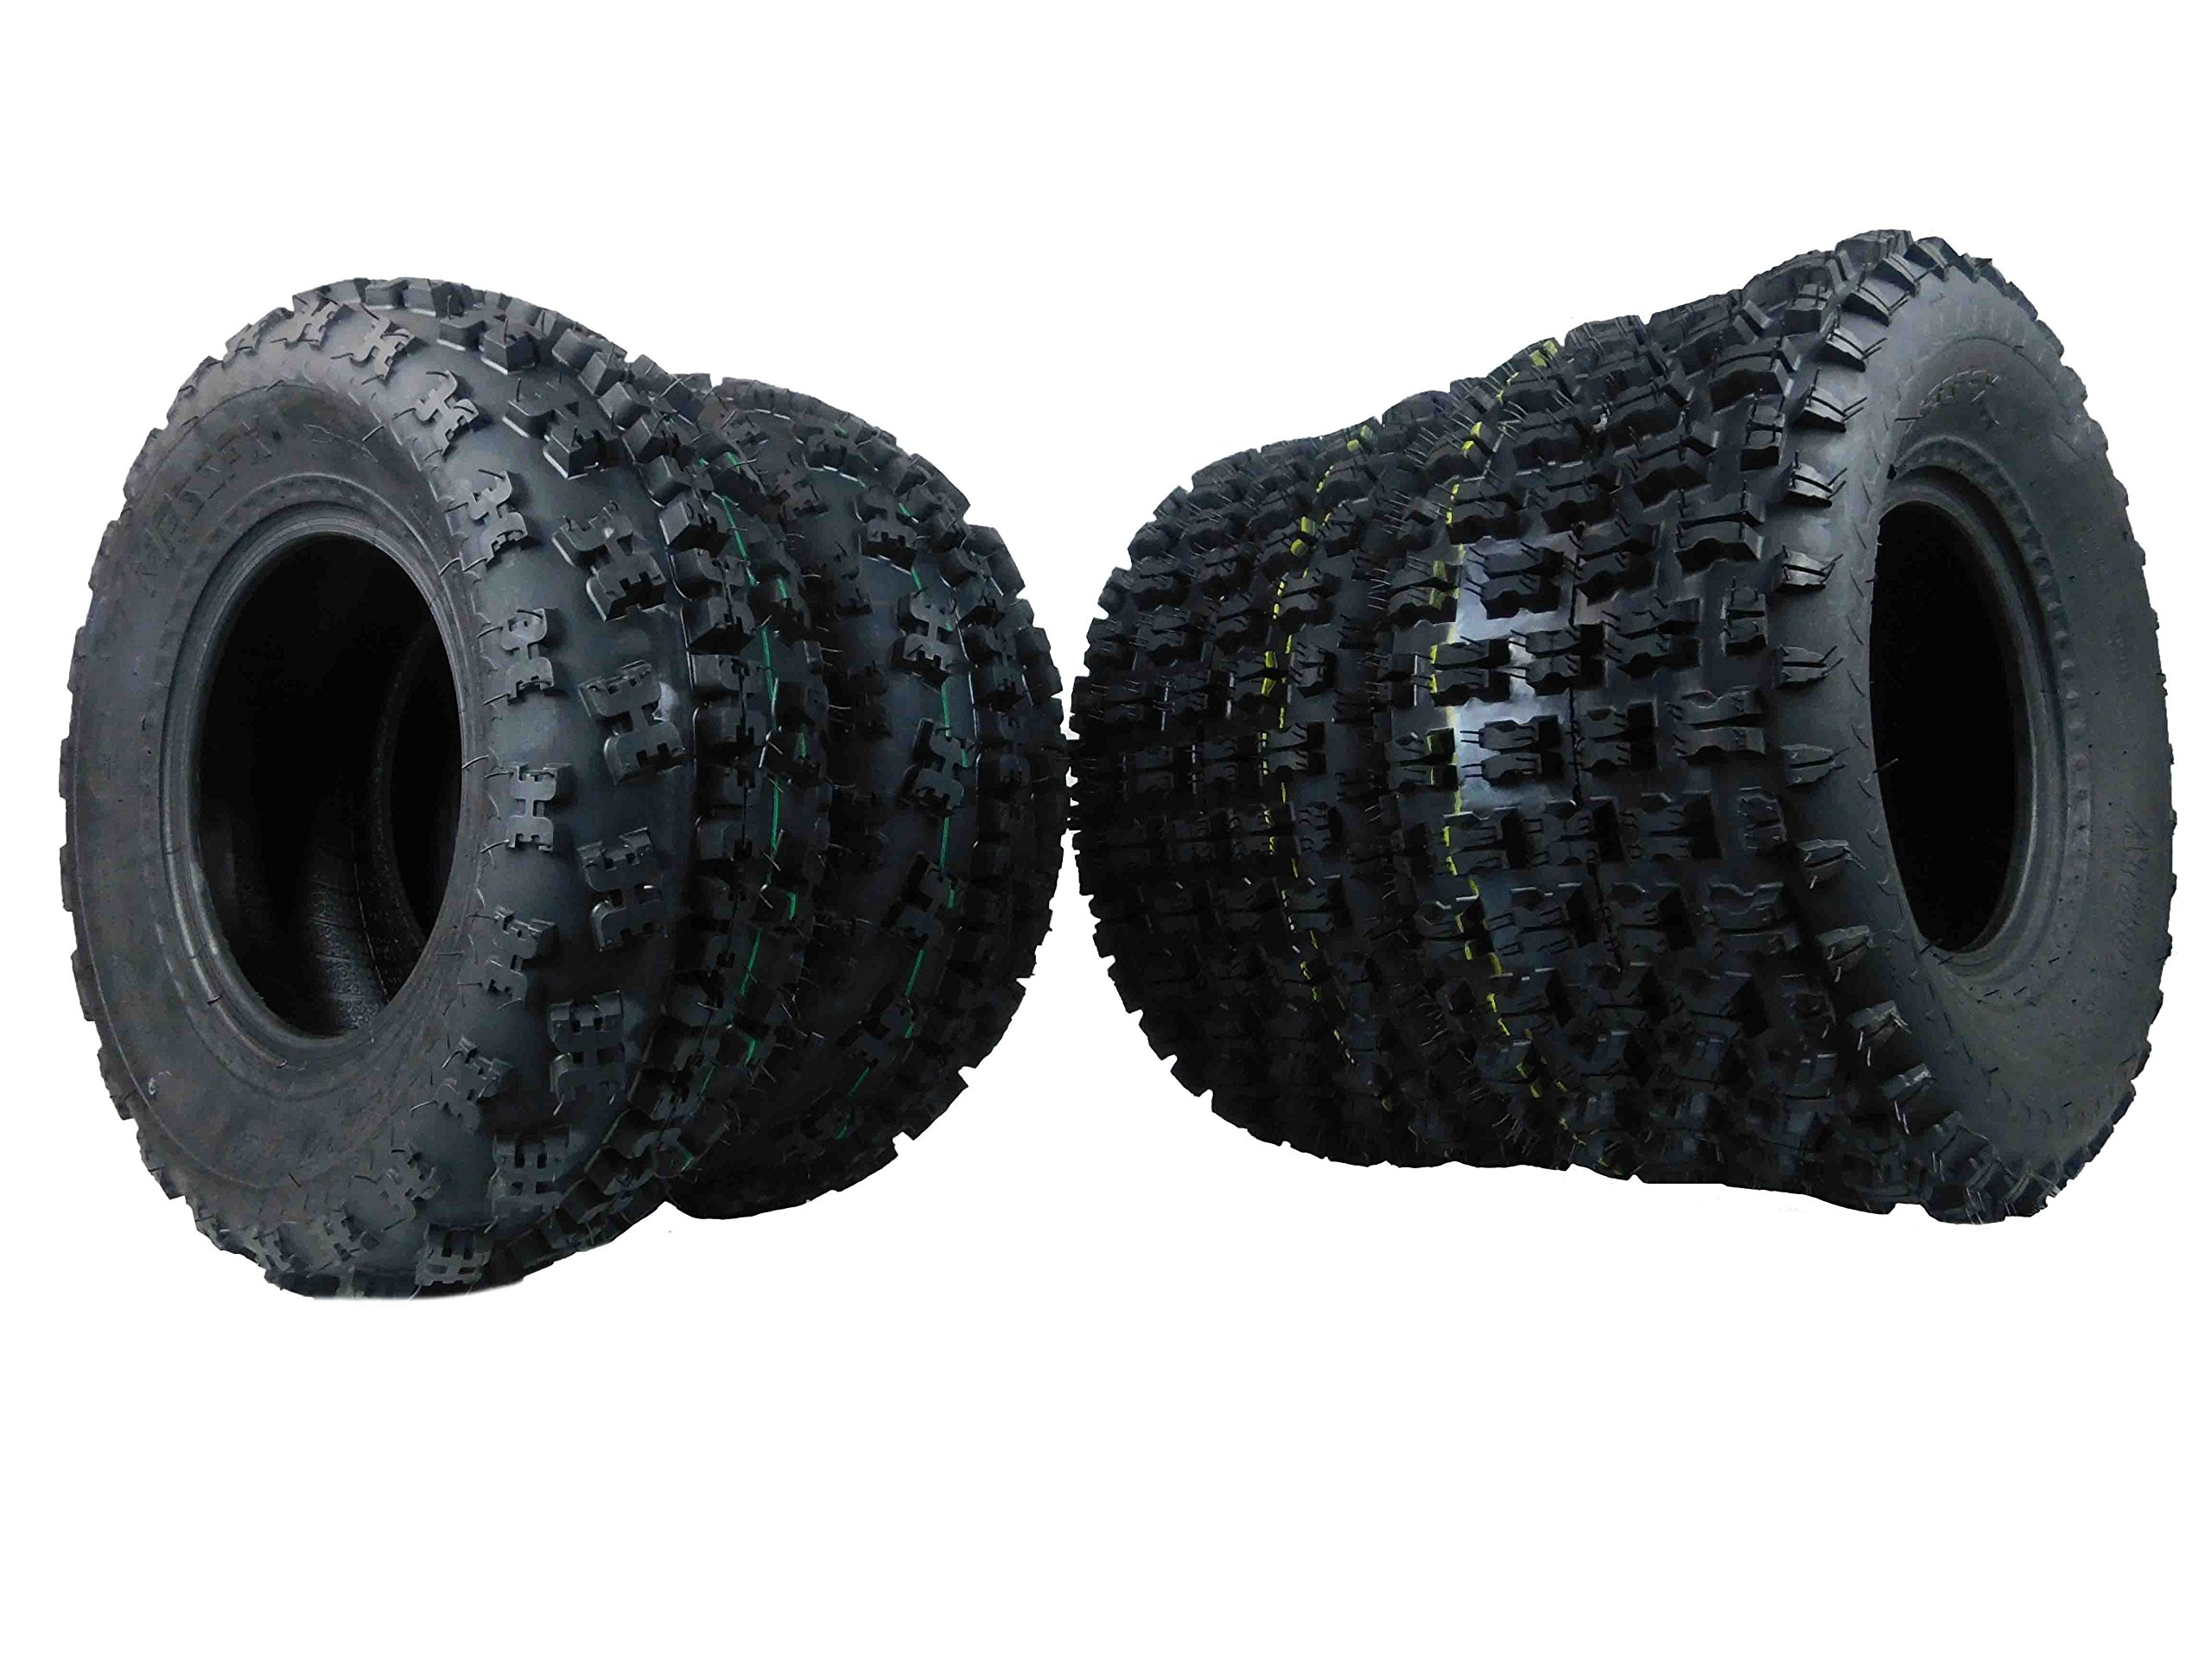 Full Set Of MassFx Front (2x) 21X7-10 and rear Tires (2x) 20X10-9 ATV Tires Pair by MASSFX